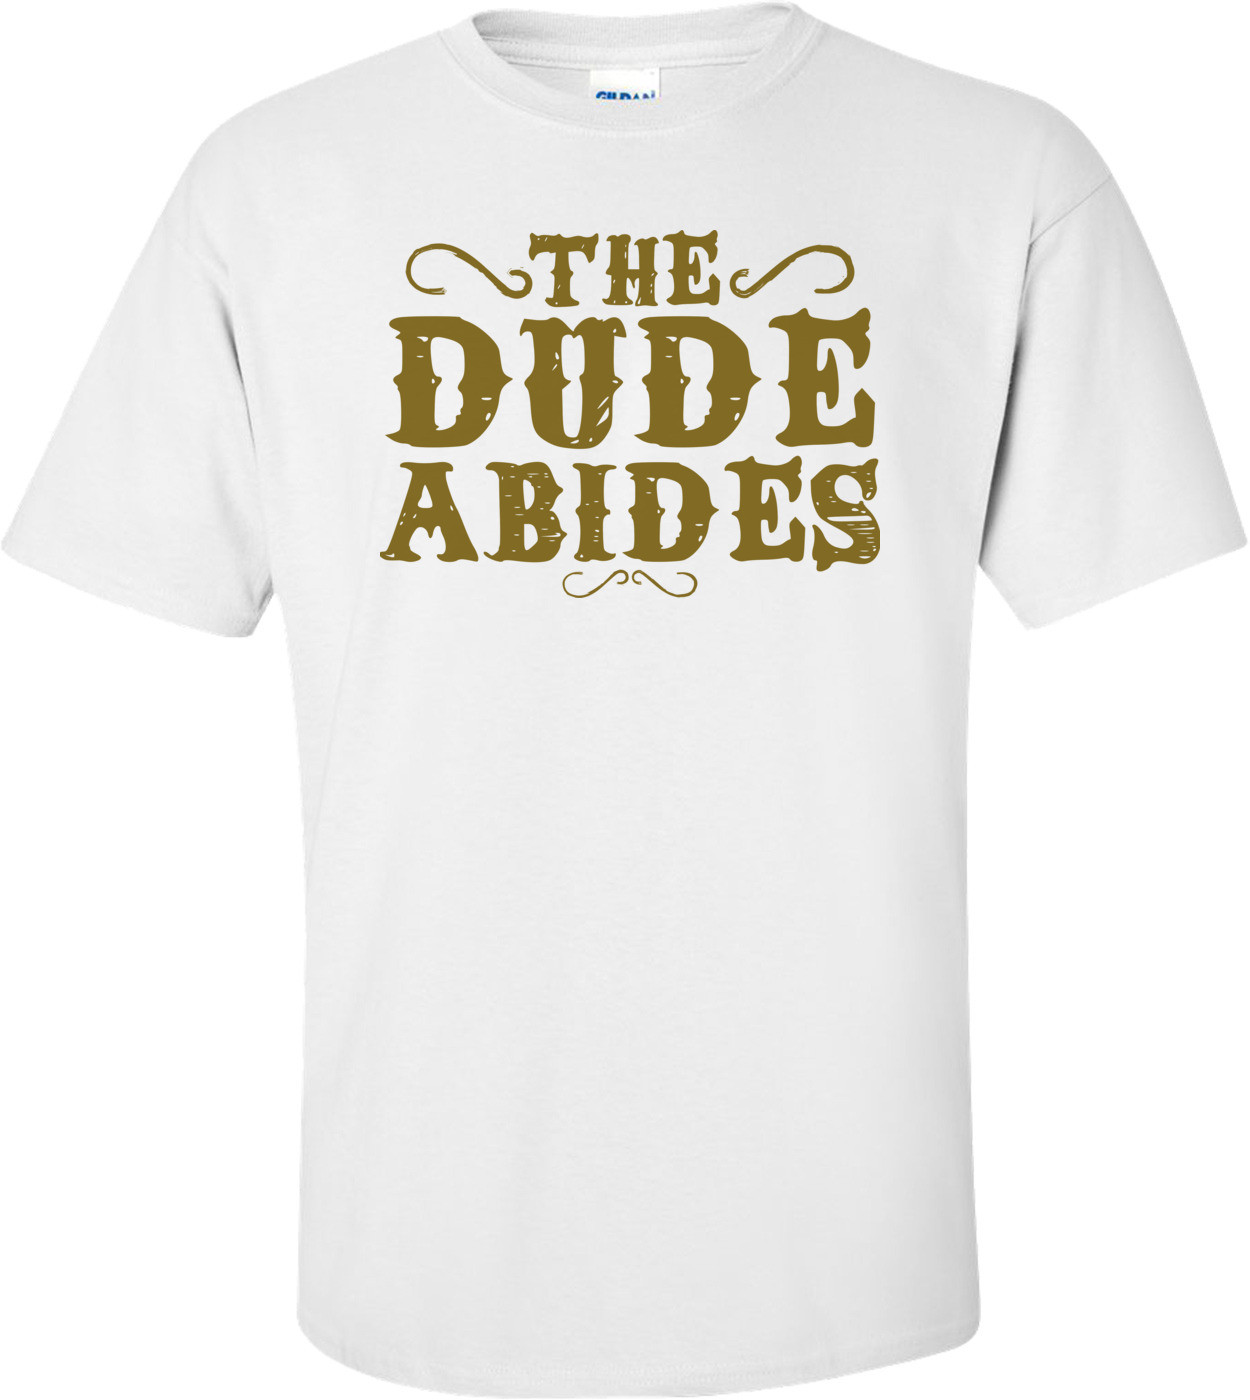 The Dude Abides The Big Lebowski T-shirt